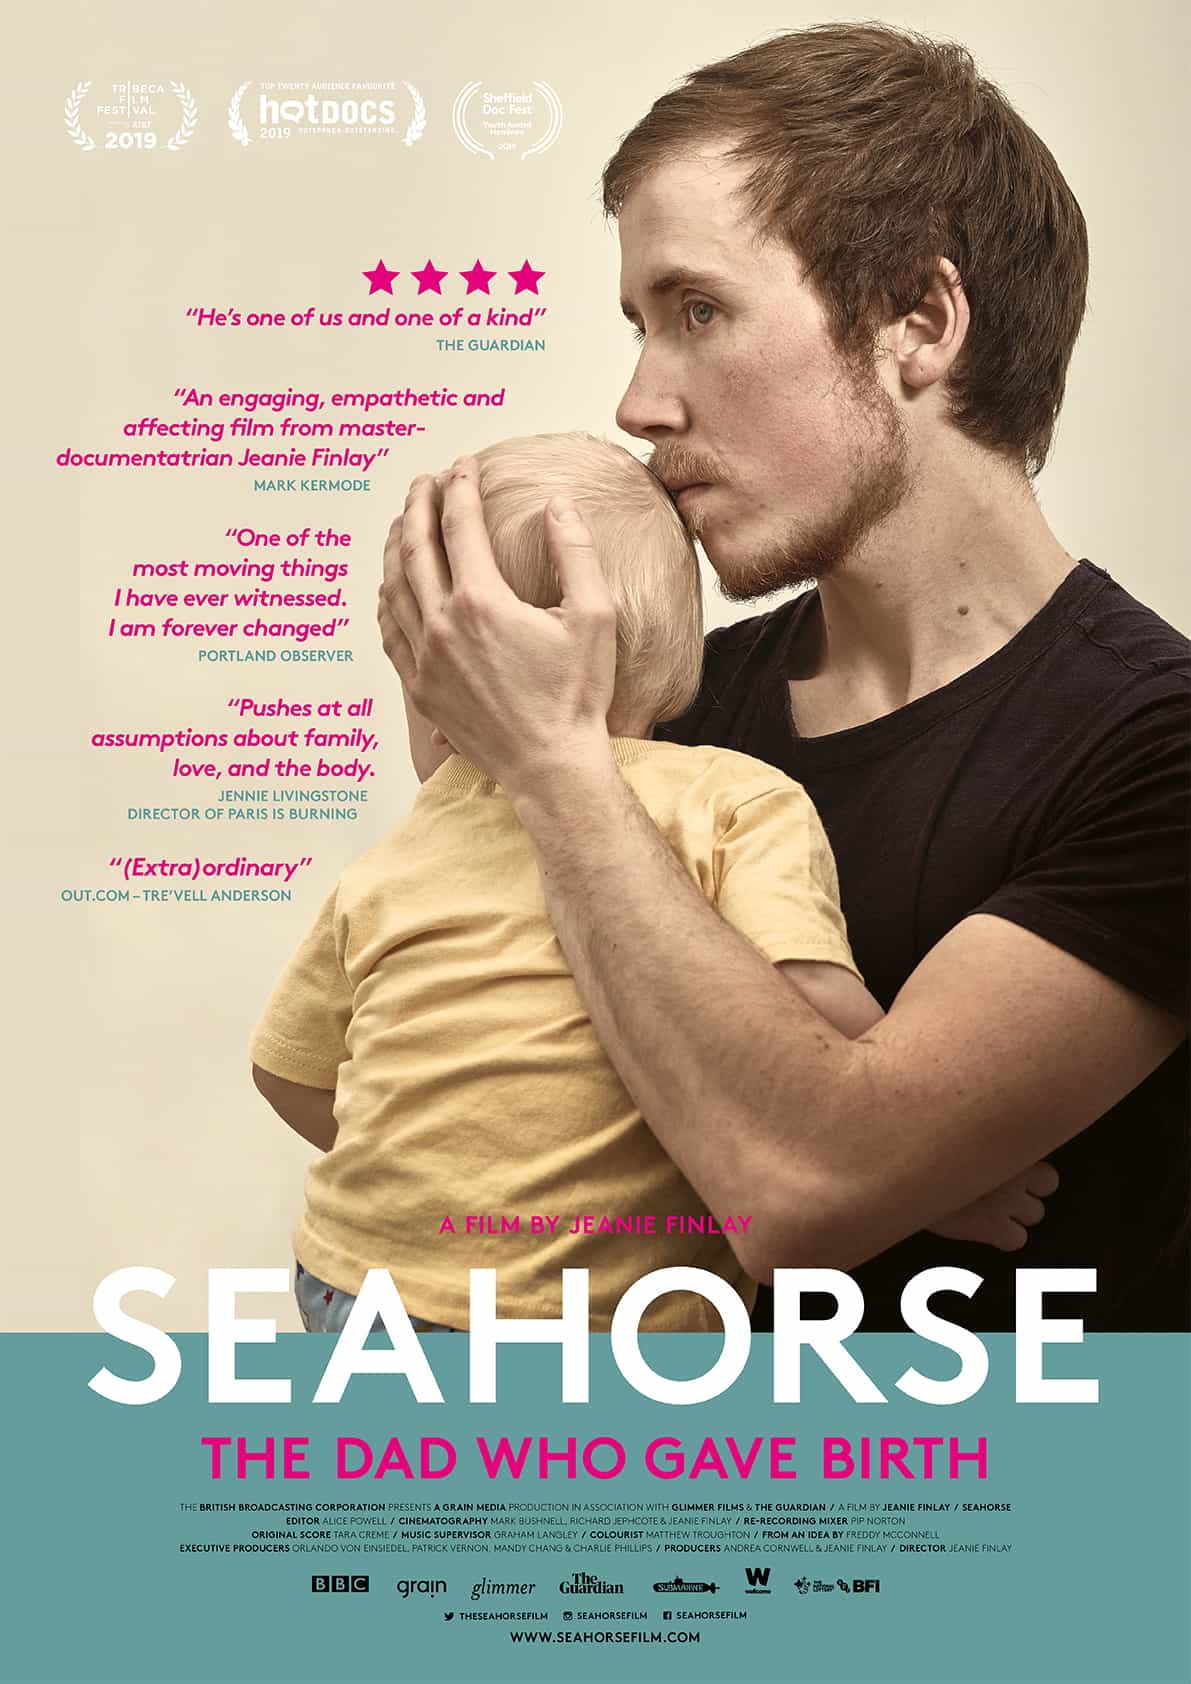 Seahorse: The Dad Who Gave Birth